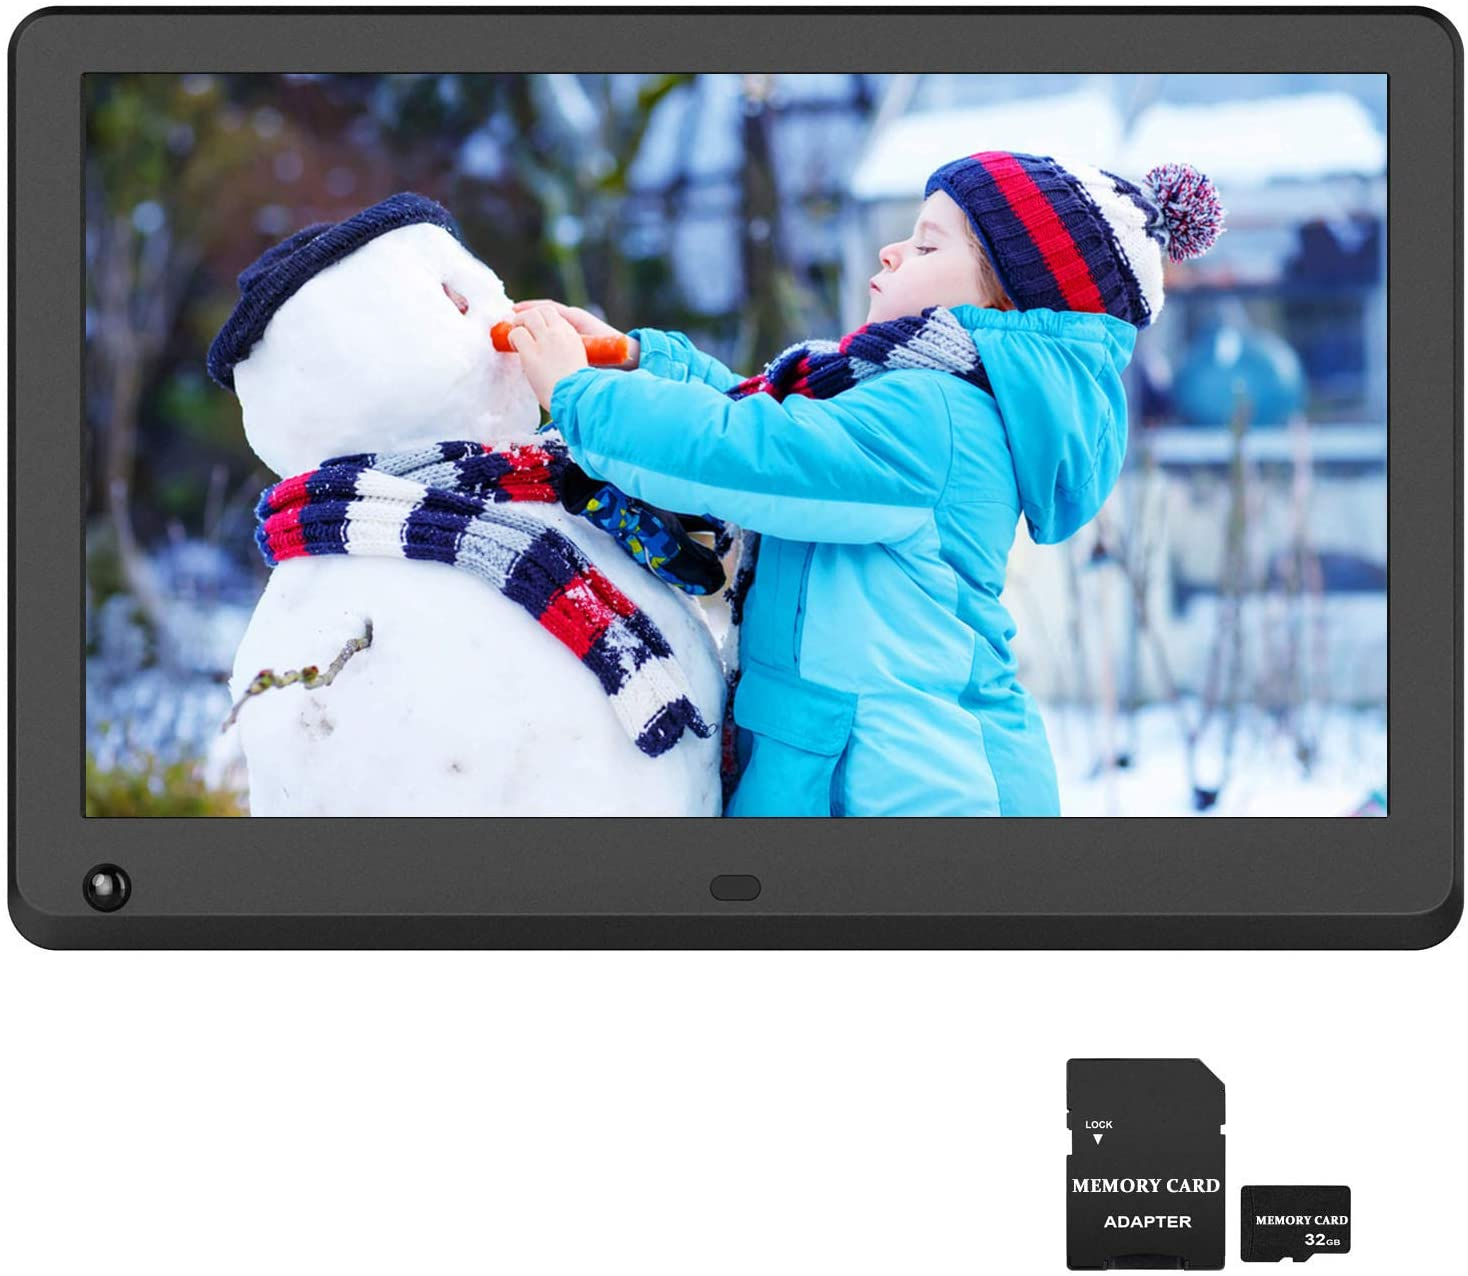 12 inch Digital Picture Frame 1920x1080 IPS Screen 16:9 Photo Auto Rotate, Motion Sensor Detection, 1080P Video Frame, Auto Turn On/Off, Auto Play, Background Music, Include 32GB SD Card